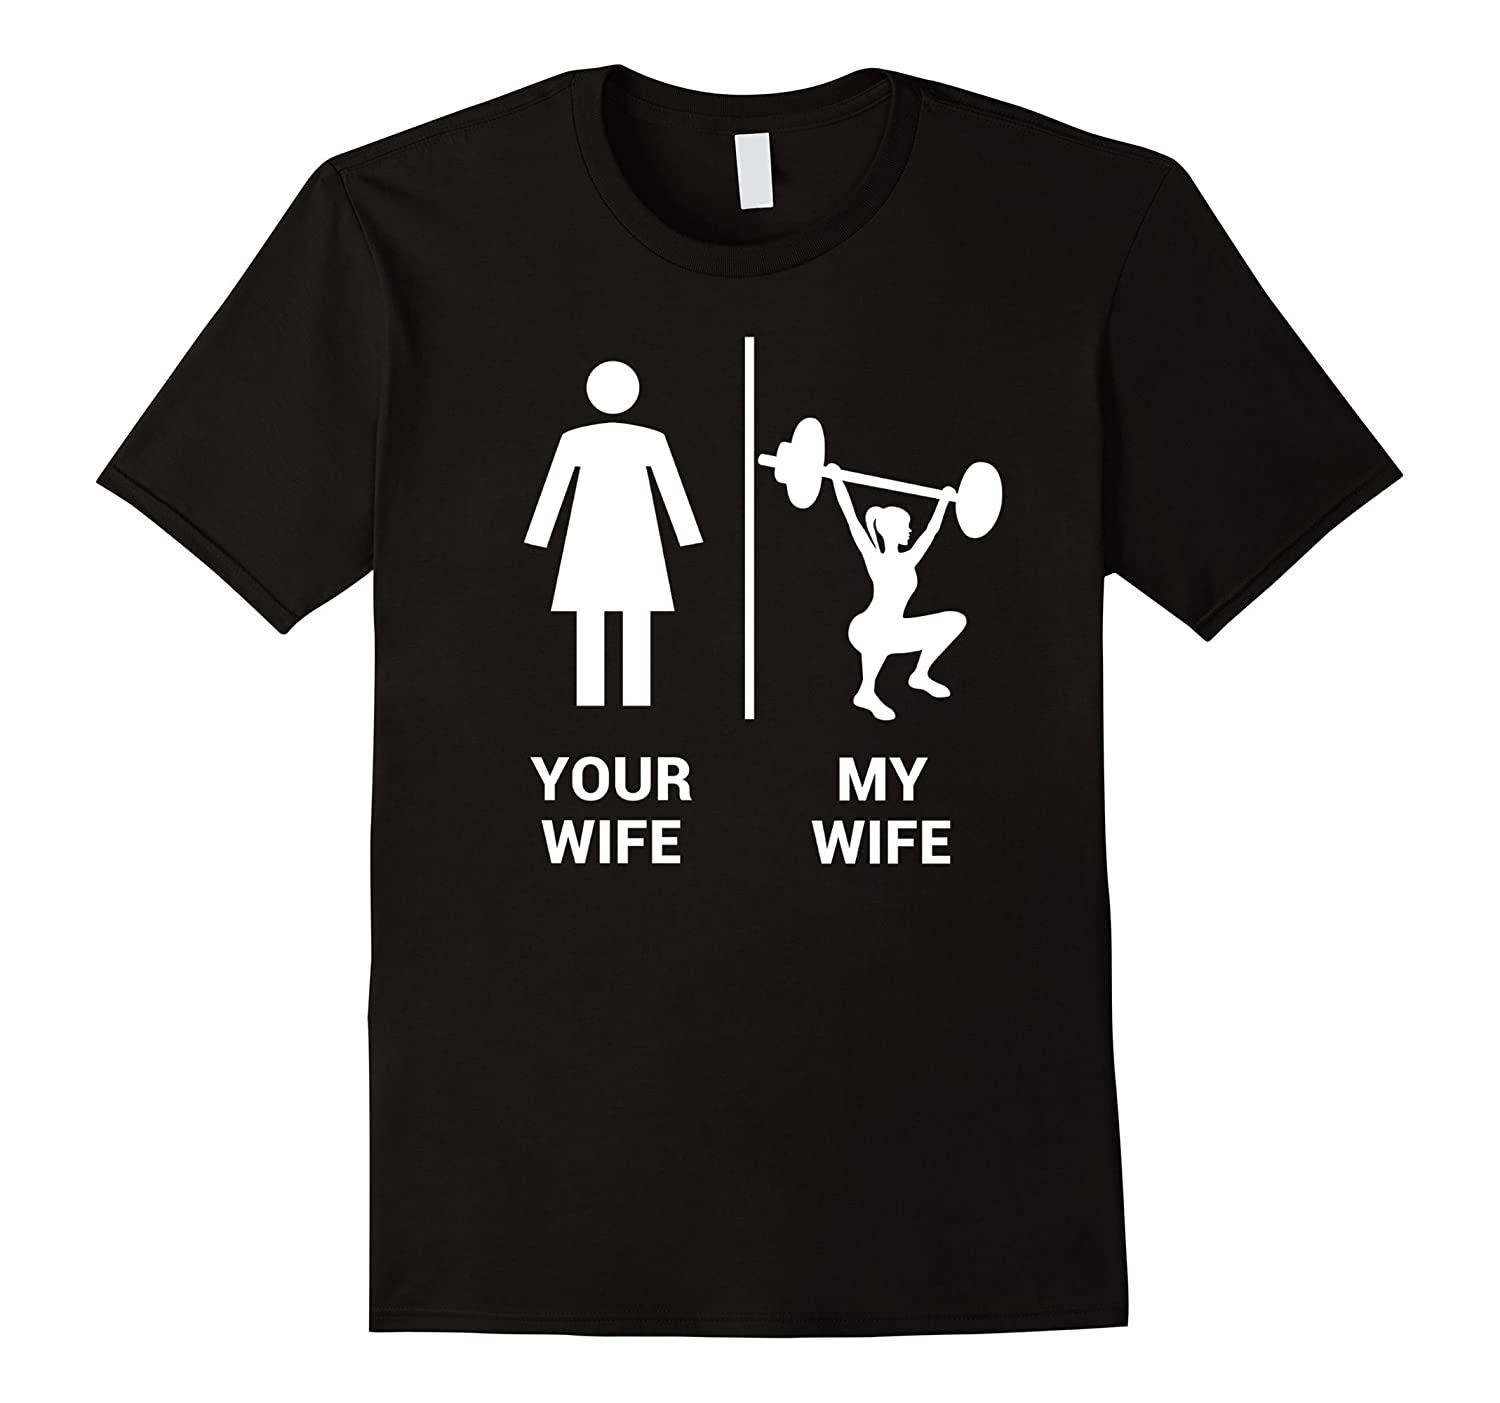 Your Wife My Wife Shirt Top Weightlifting Workout Gym Gift-TH